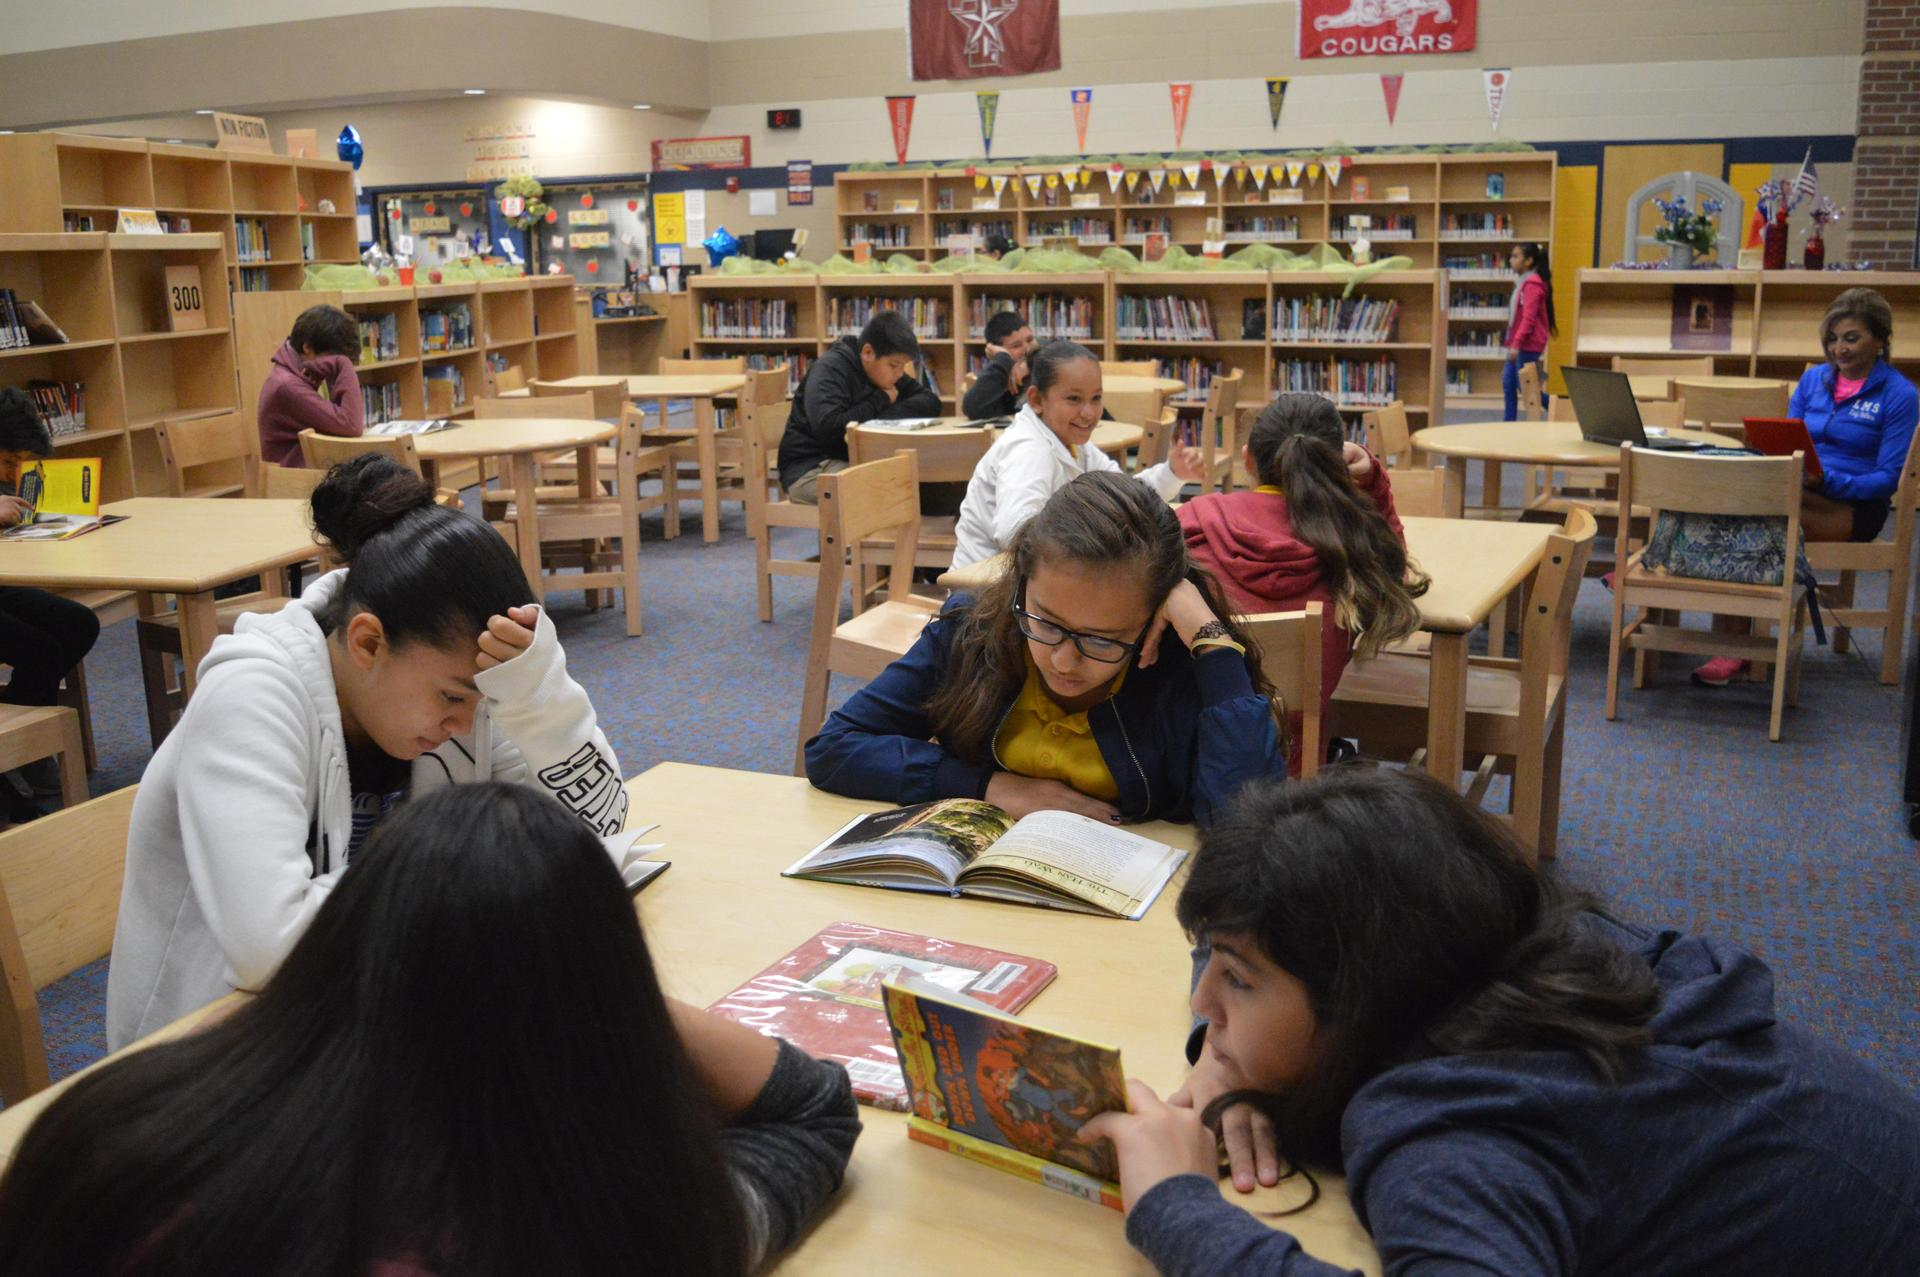 Image of students reading books at library tables.